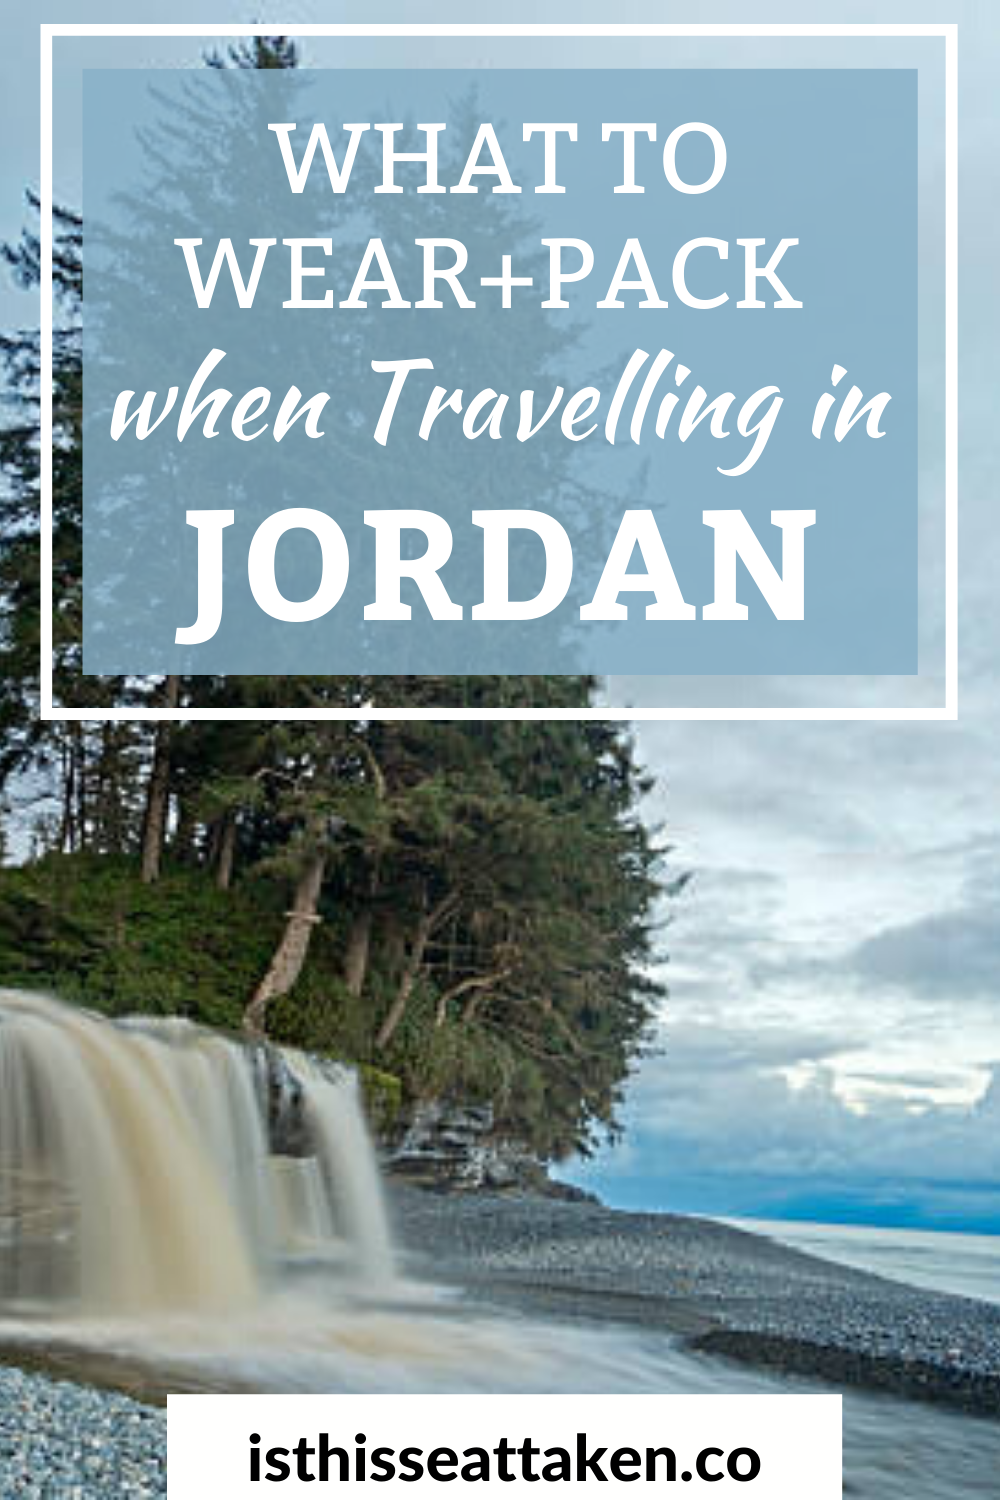 What to Pack + Wear When Traveling in Jordan